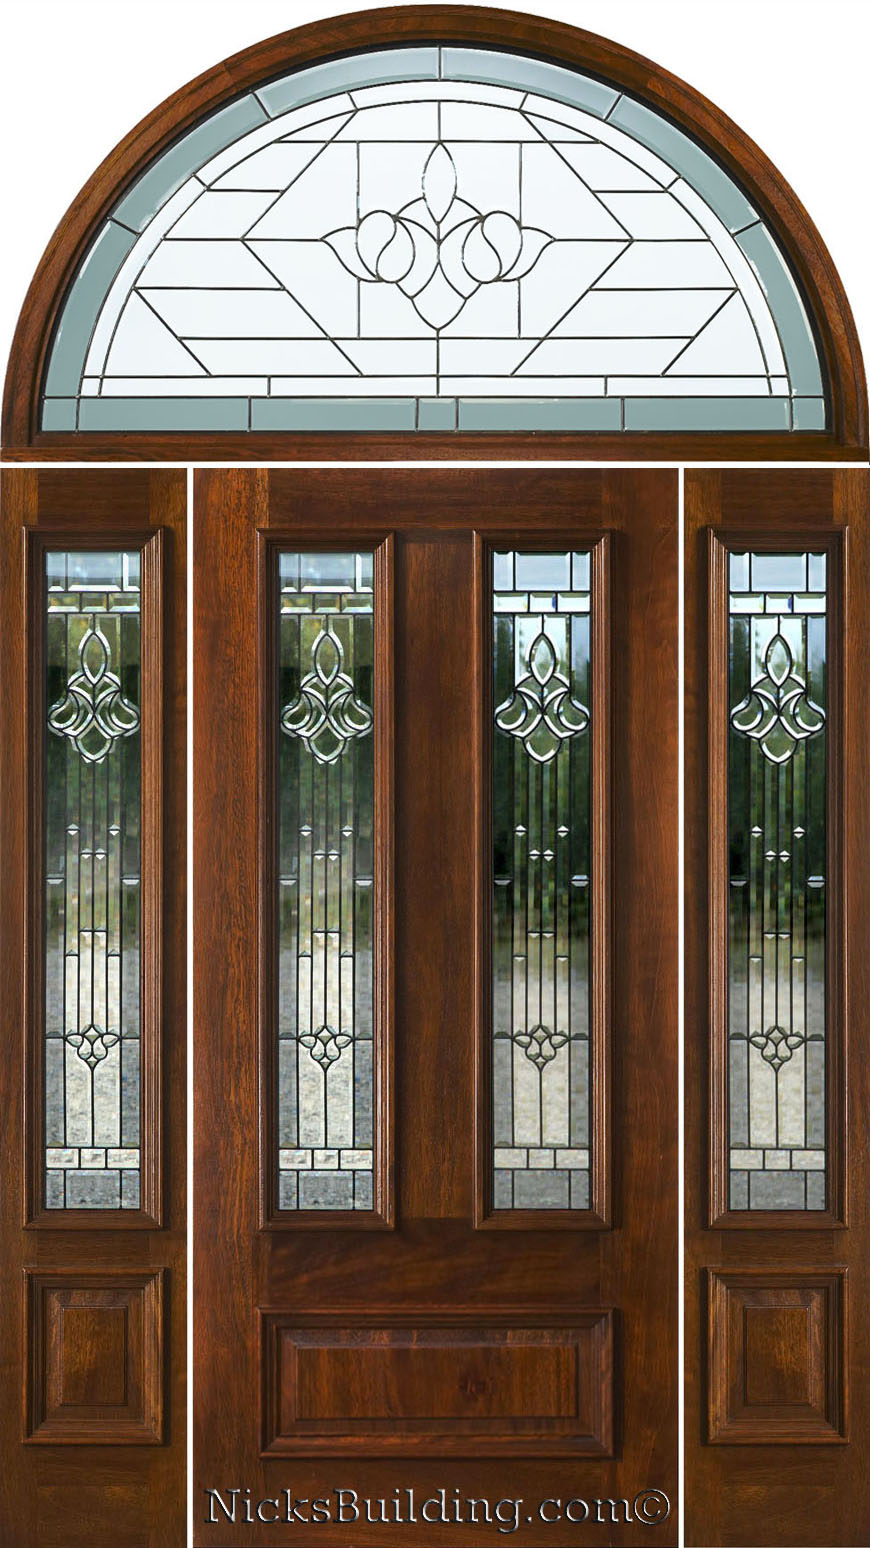 Exterior doors with half round transoms arched transoms for Entry door with transom